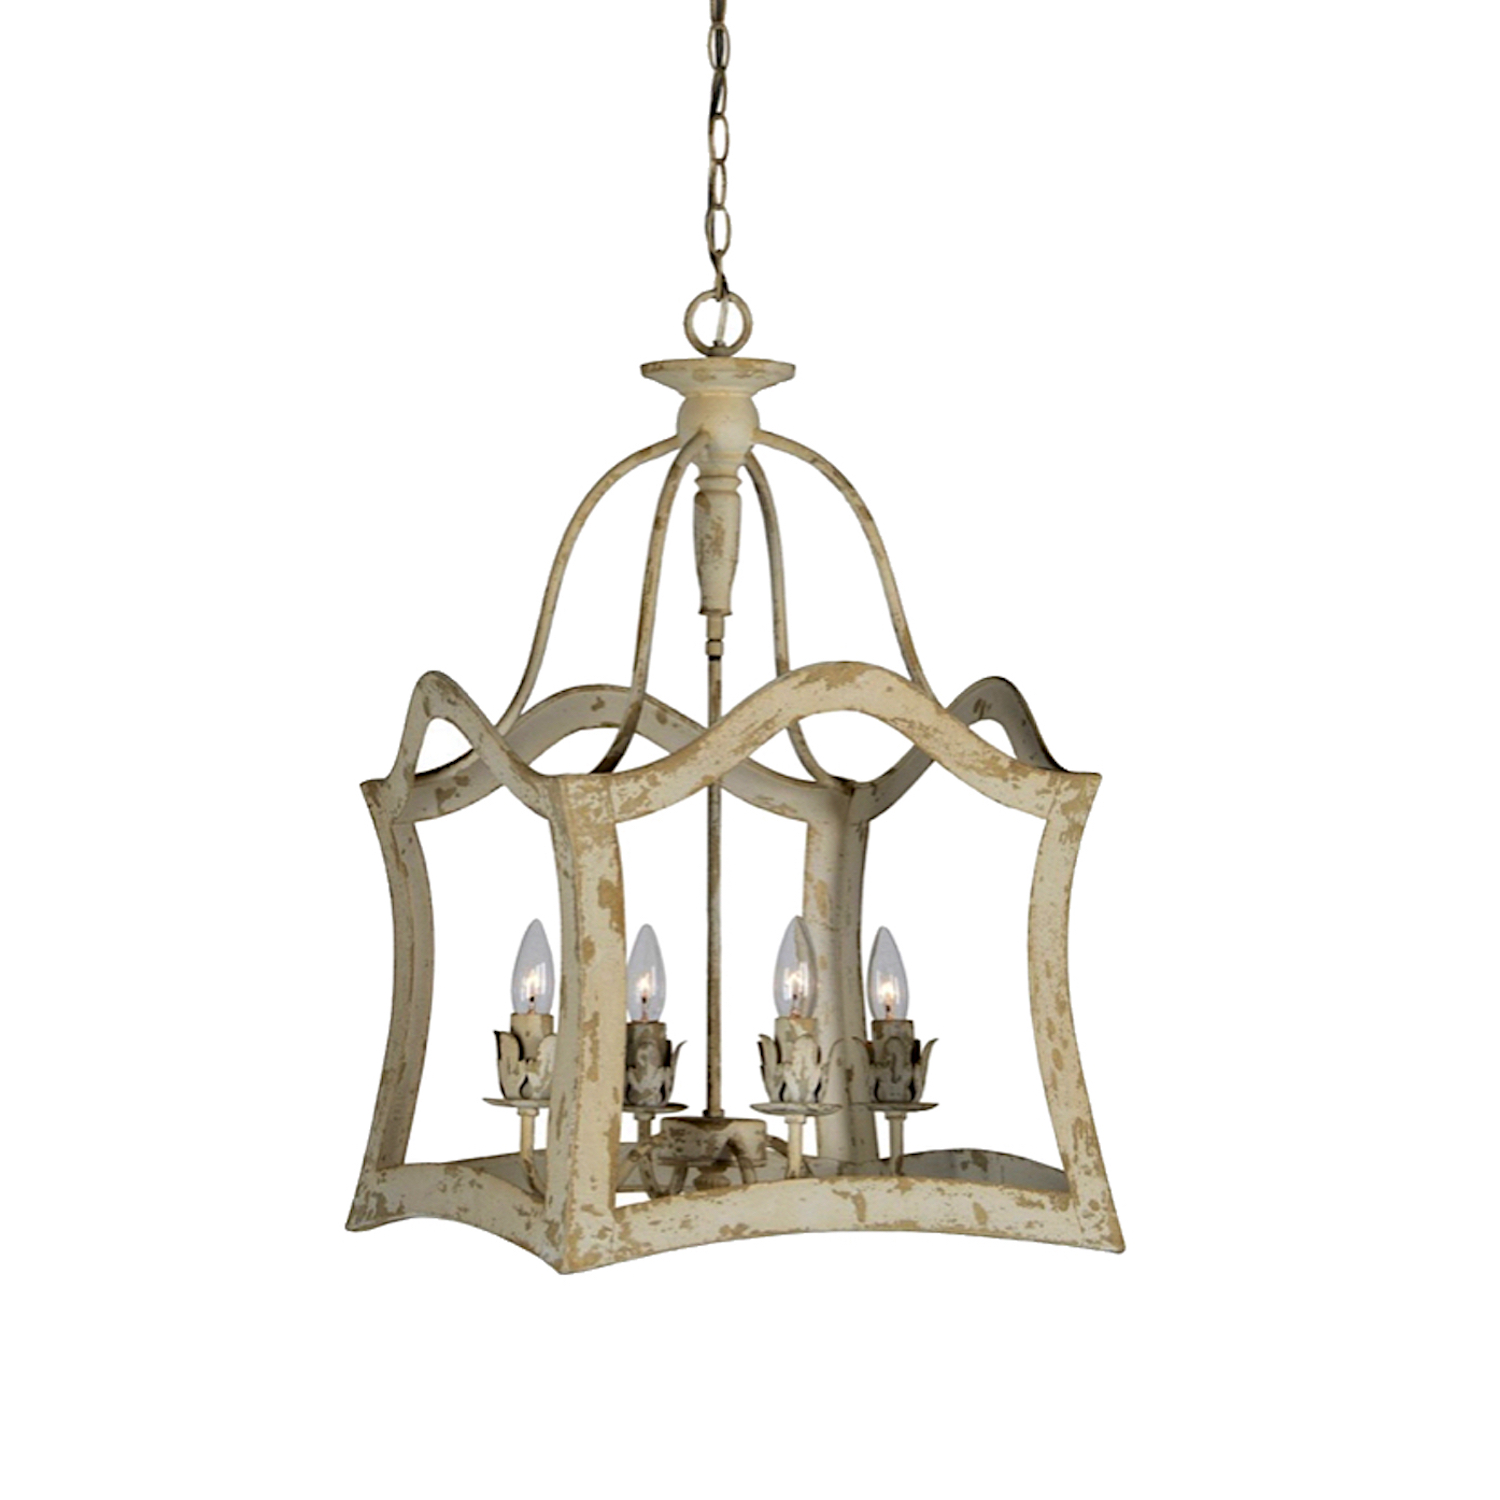 Chandelier Metal Framed Aubrey Distressed Aged Vintage Style Light Great Price